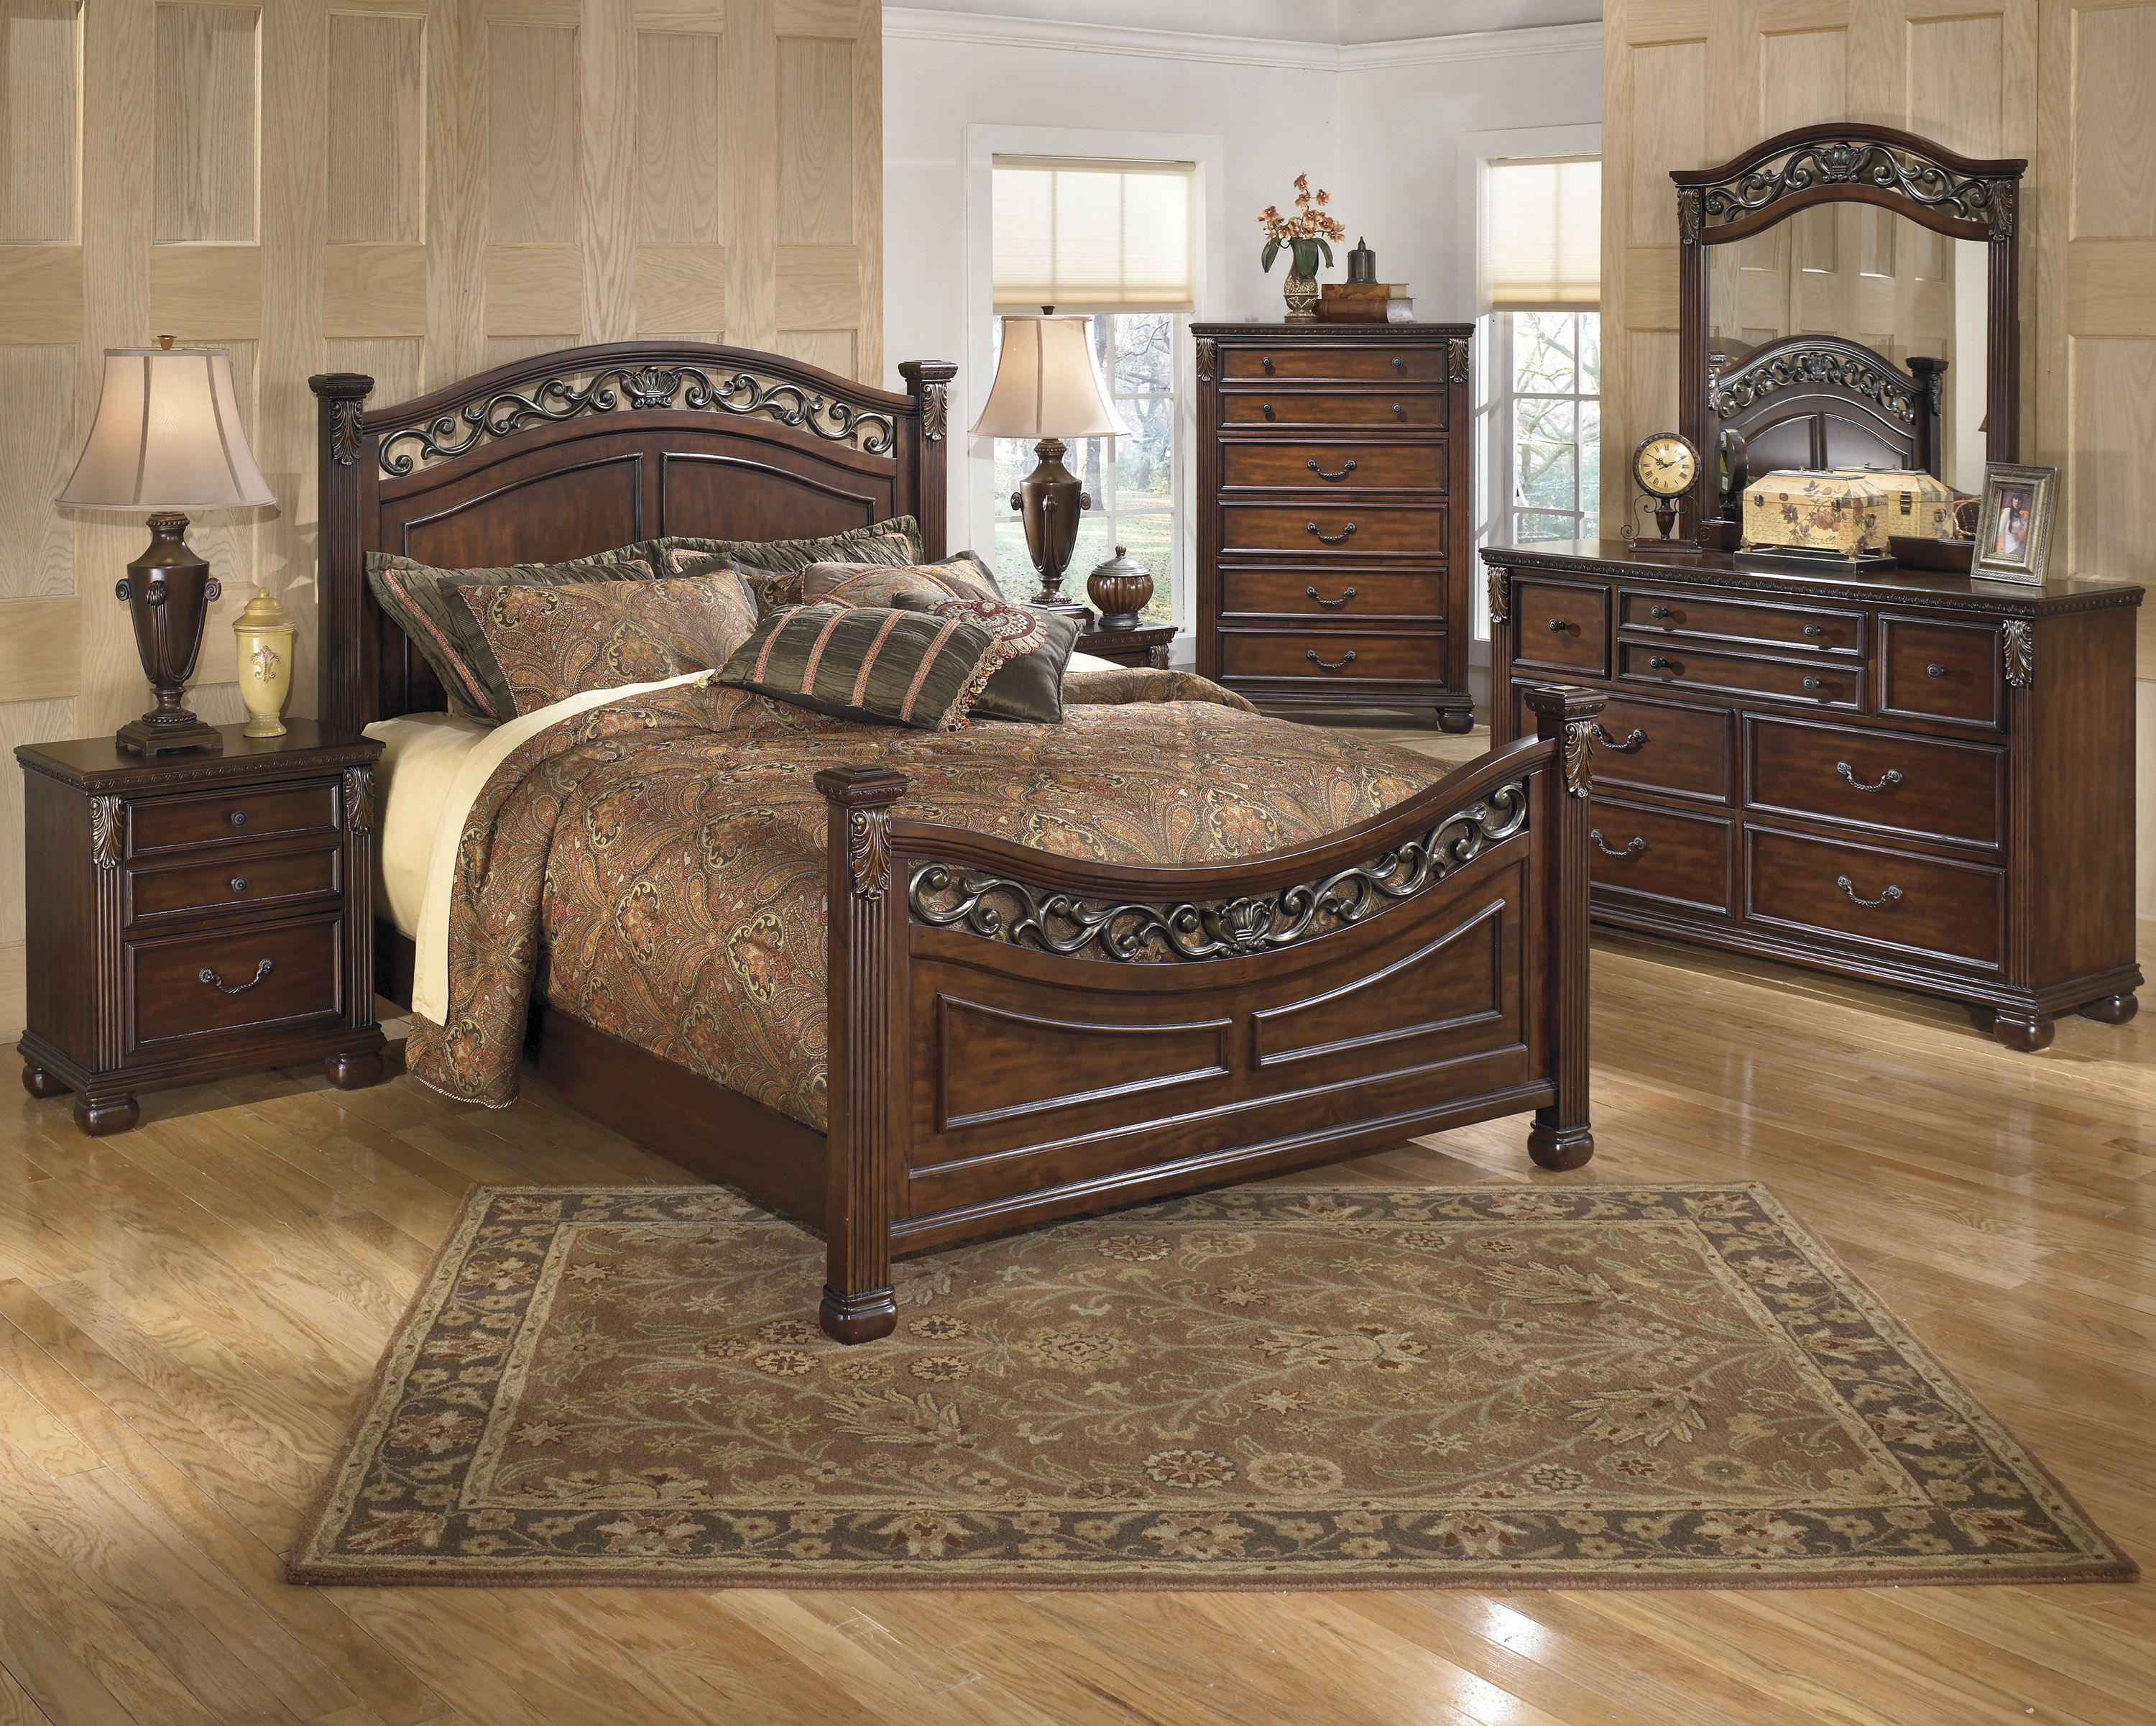 Ashley furniture leahlyn master bedroom set the classy home No dresser in master bedroom